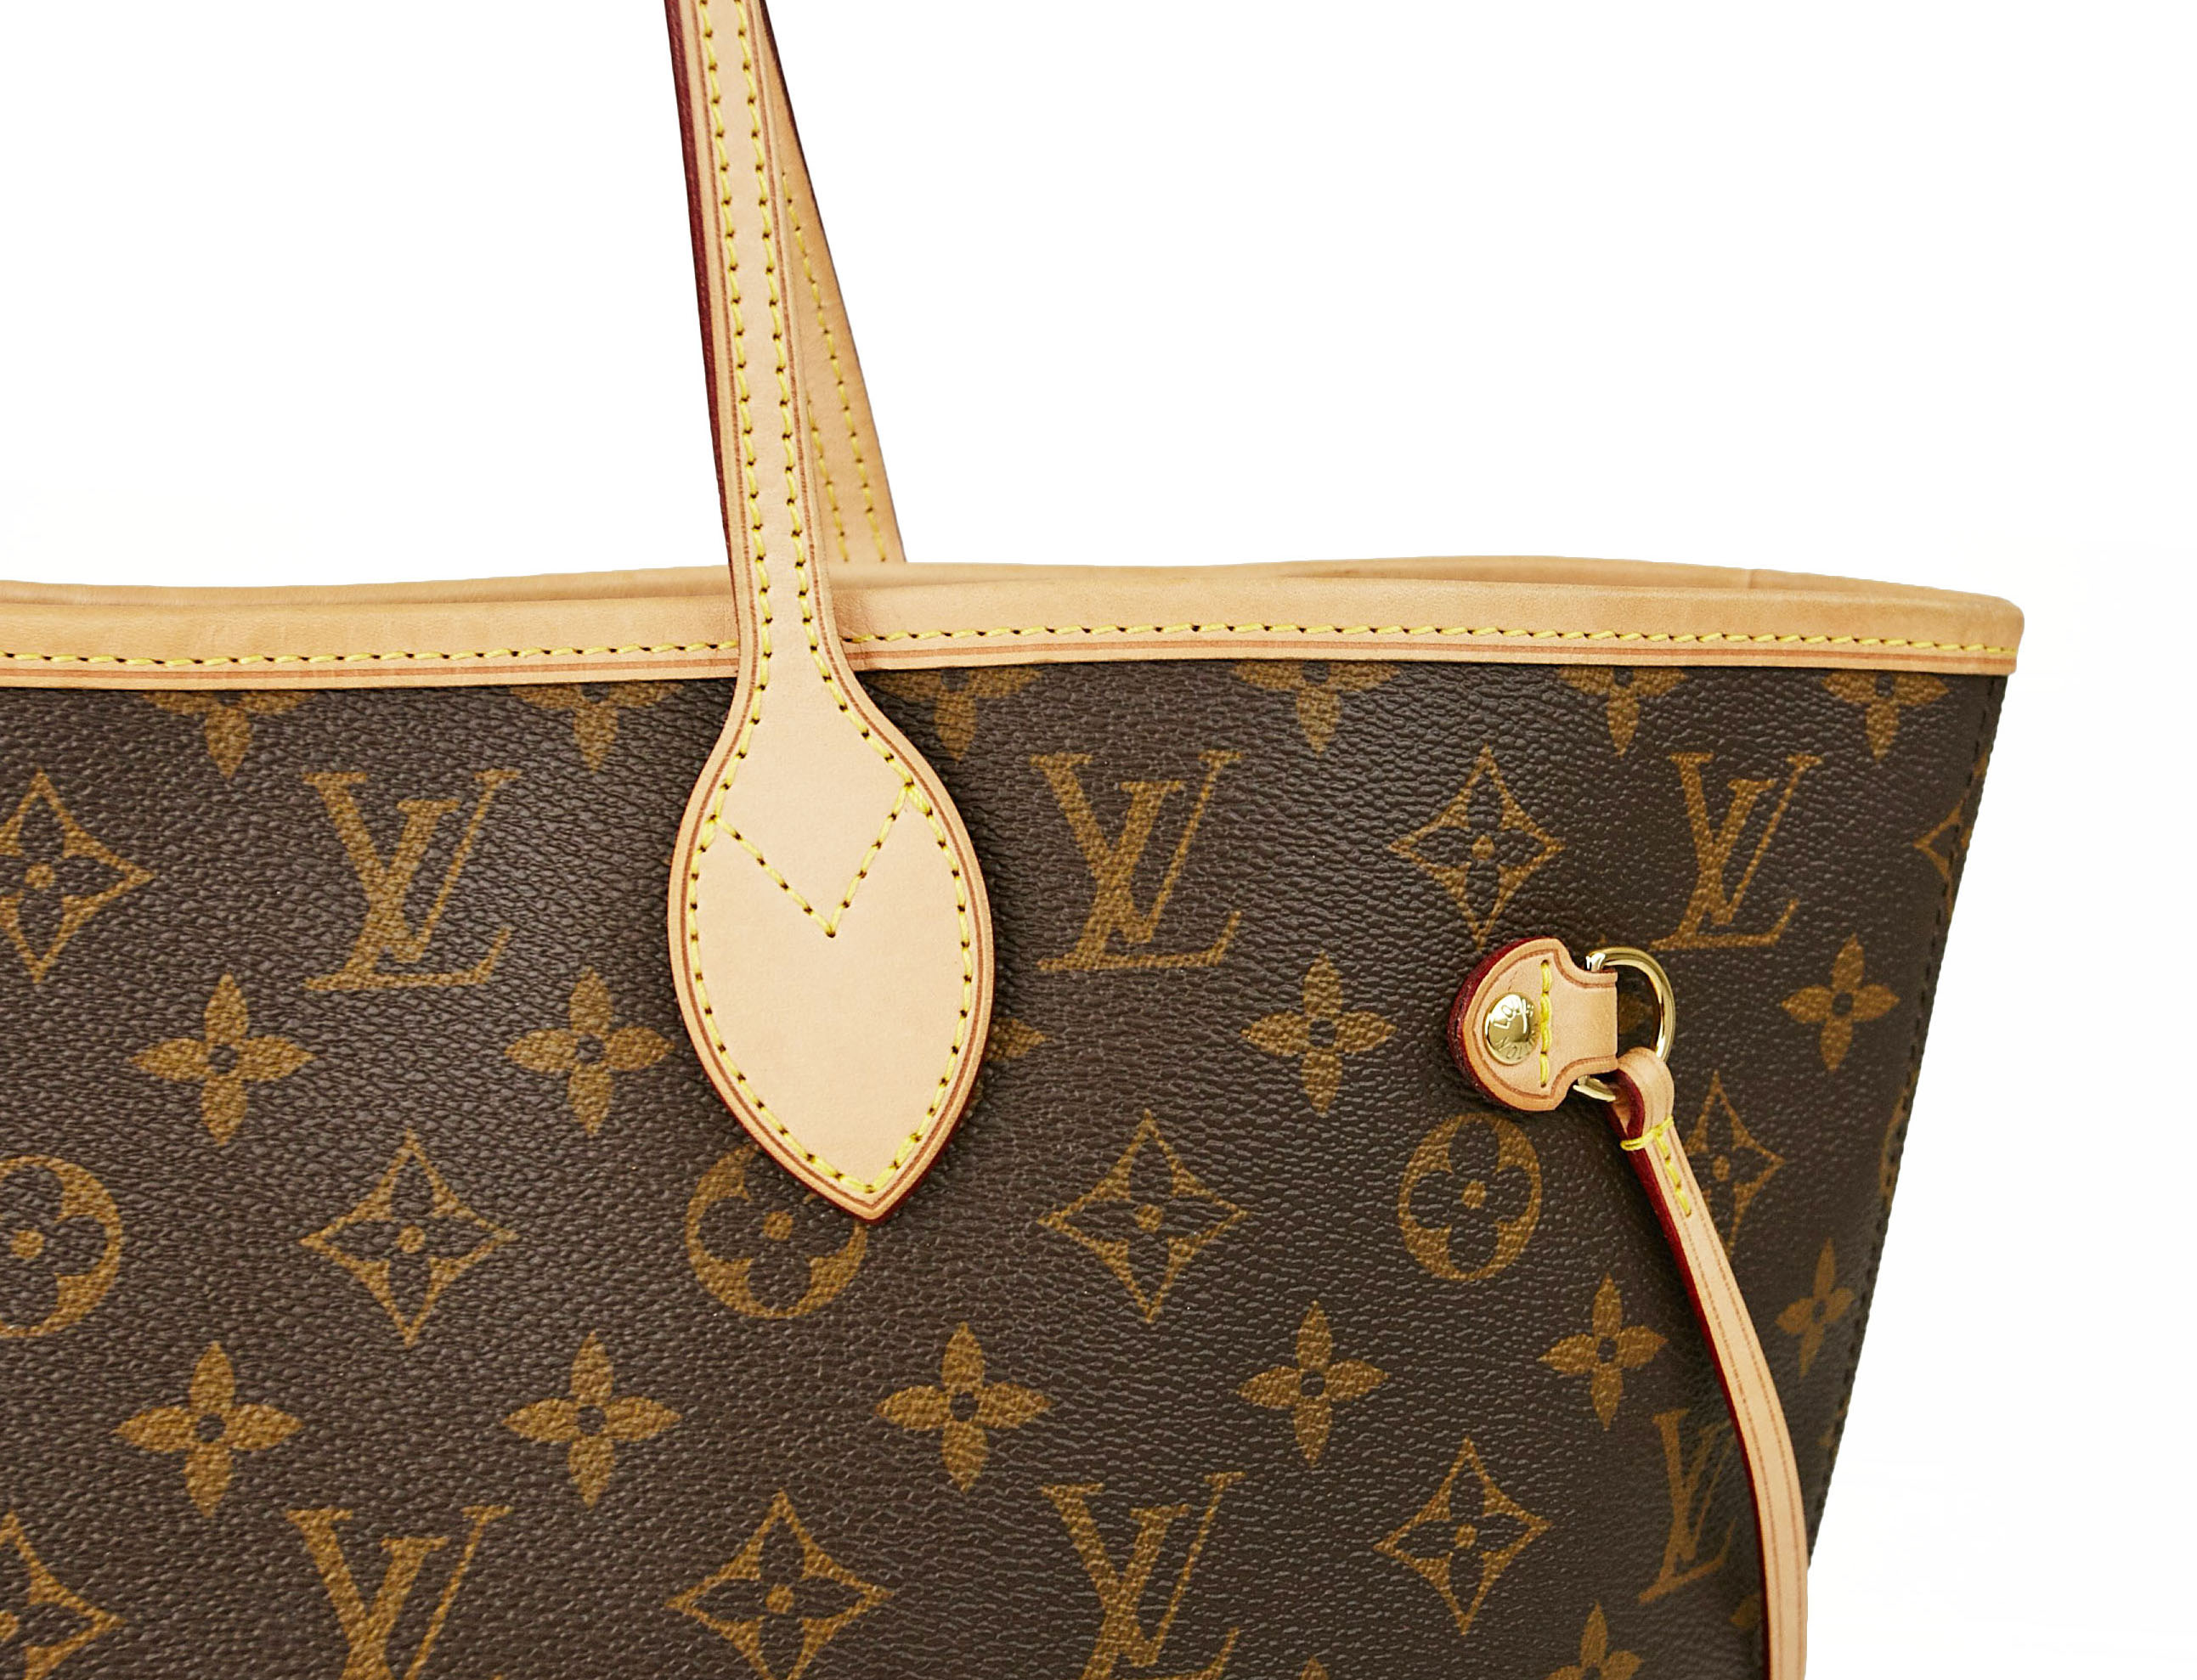 Louis Vuitton Neverfull Bag With Light Honey Patina | YoogisCloset.com